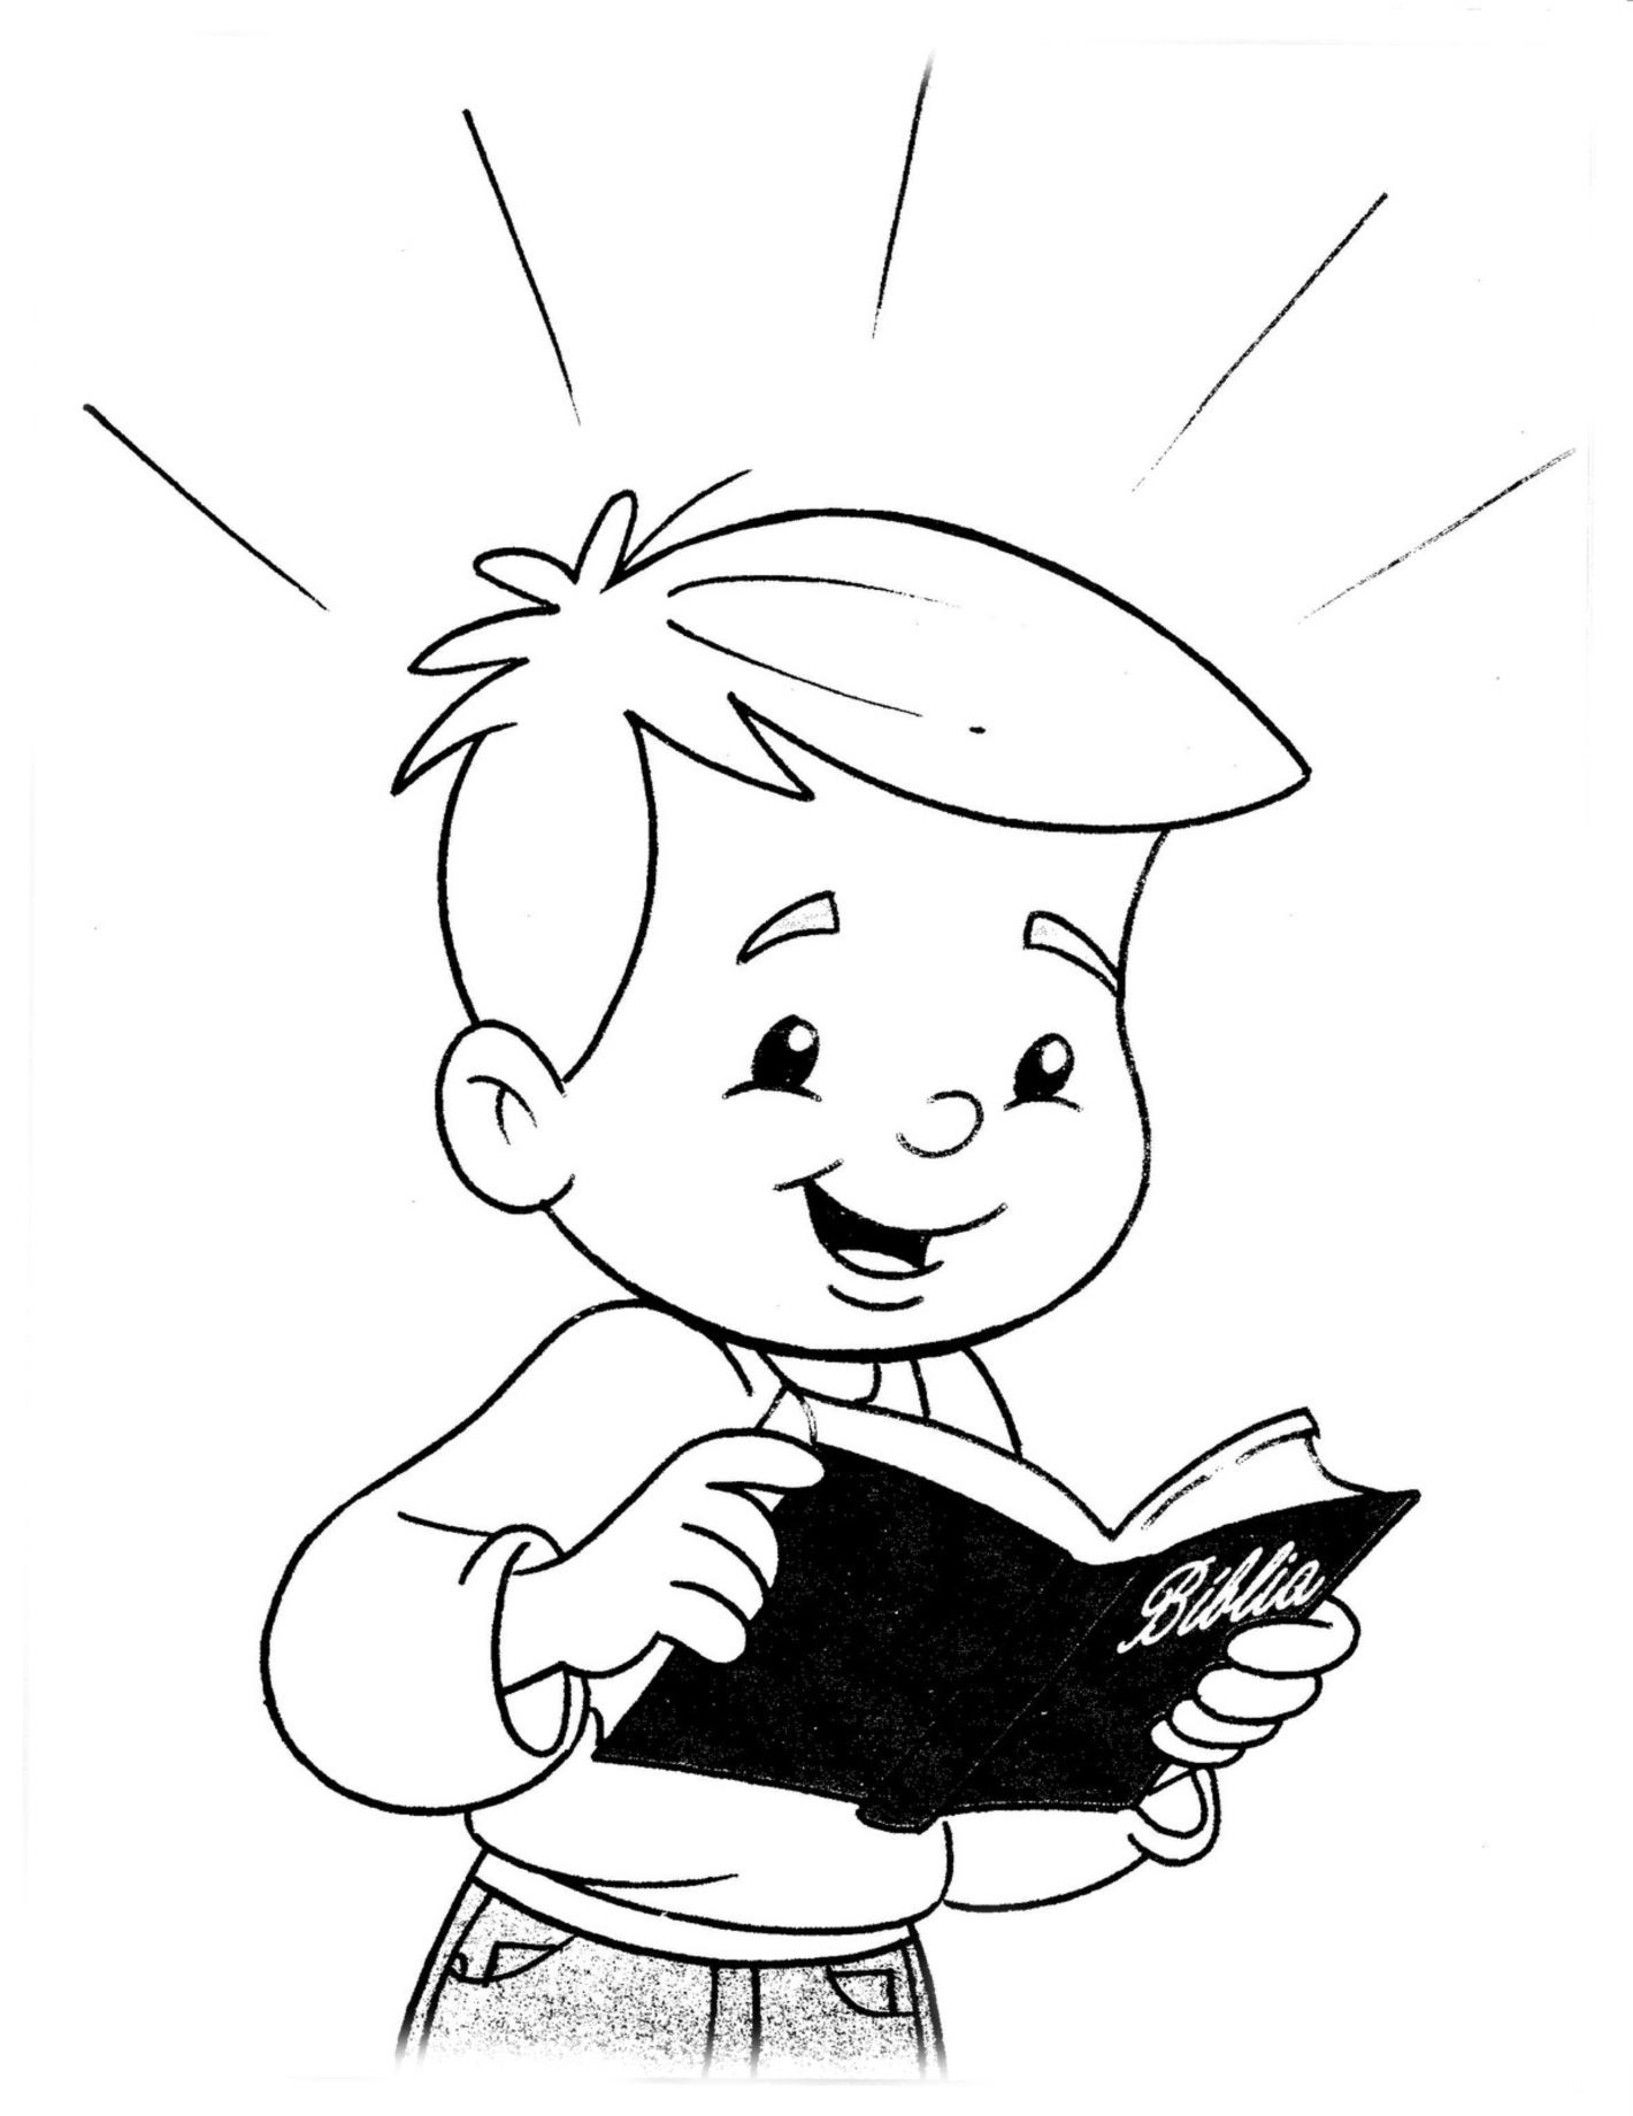 Bible coloring pages kids 5 escuela dominical para, jesus loves me coloring pages printables